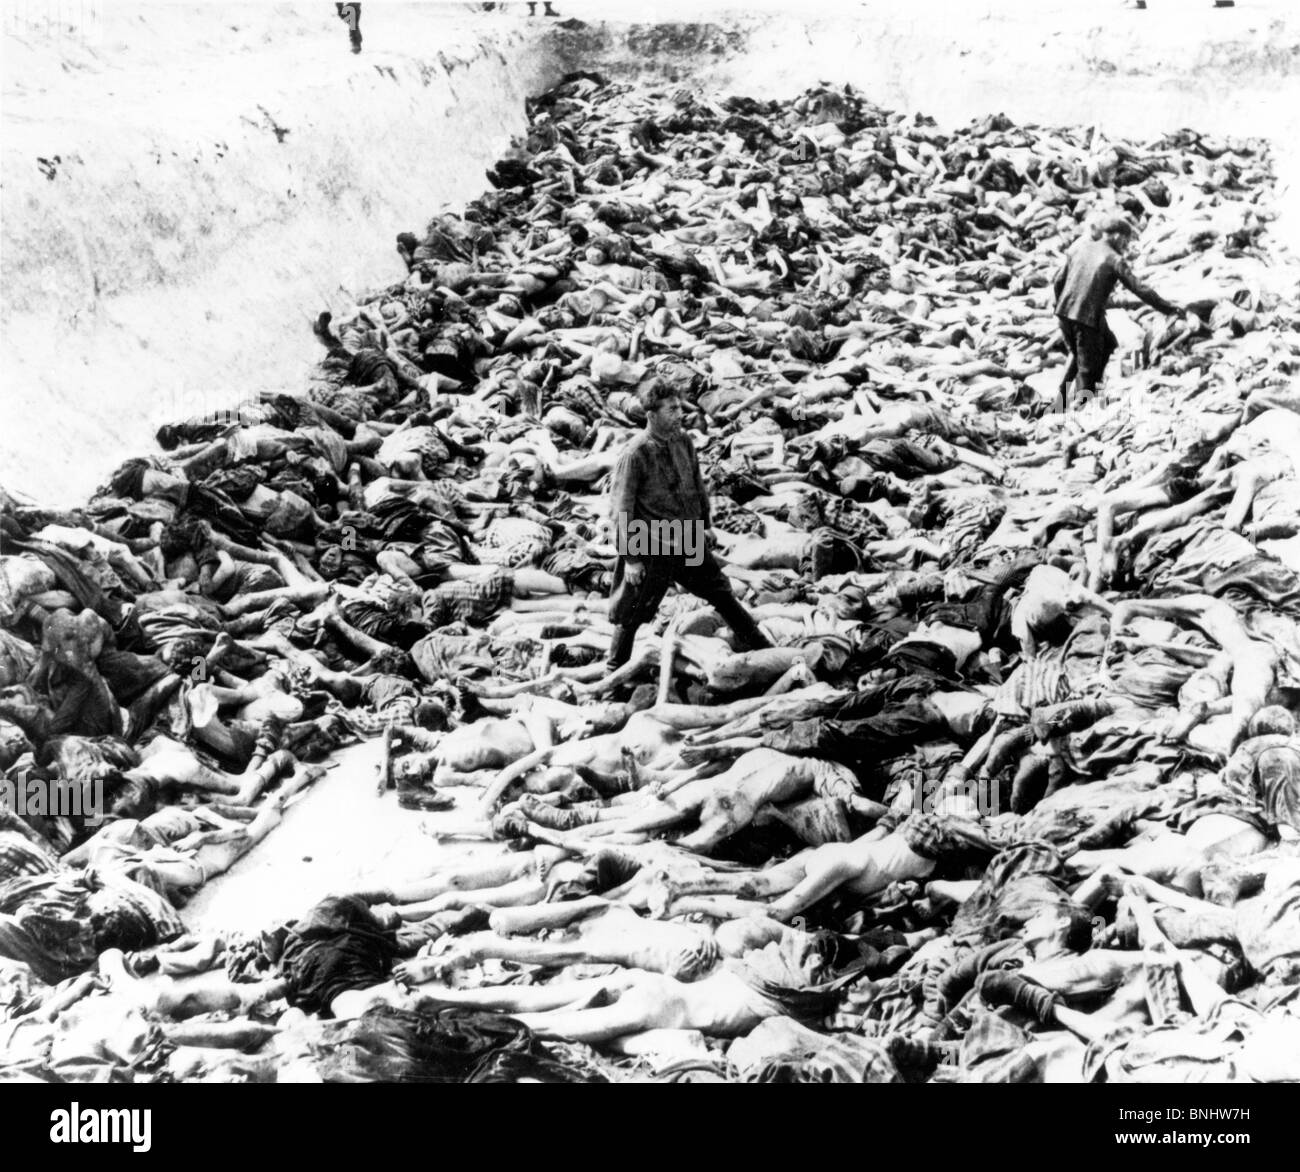 a history of the nazis concentration camps in germany A detailed account of concentration camps in nazi germany that includes includes images, quotations and the main facts gcse modern world history - nazi germany a.